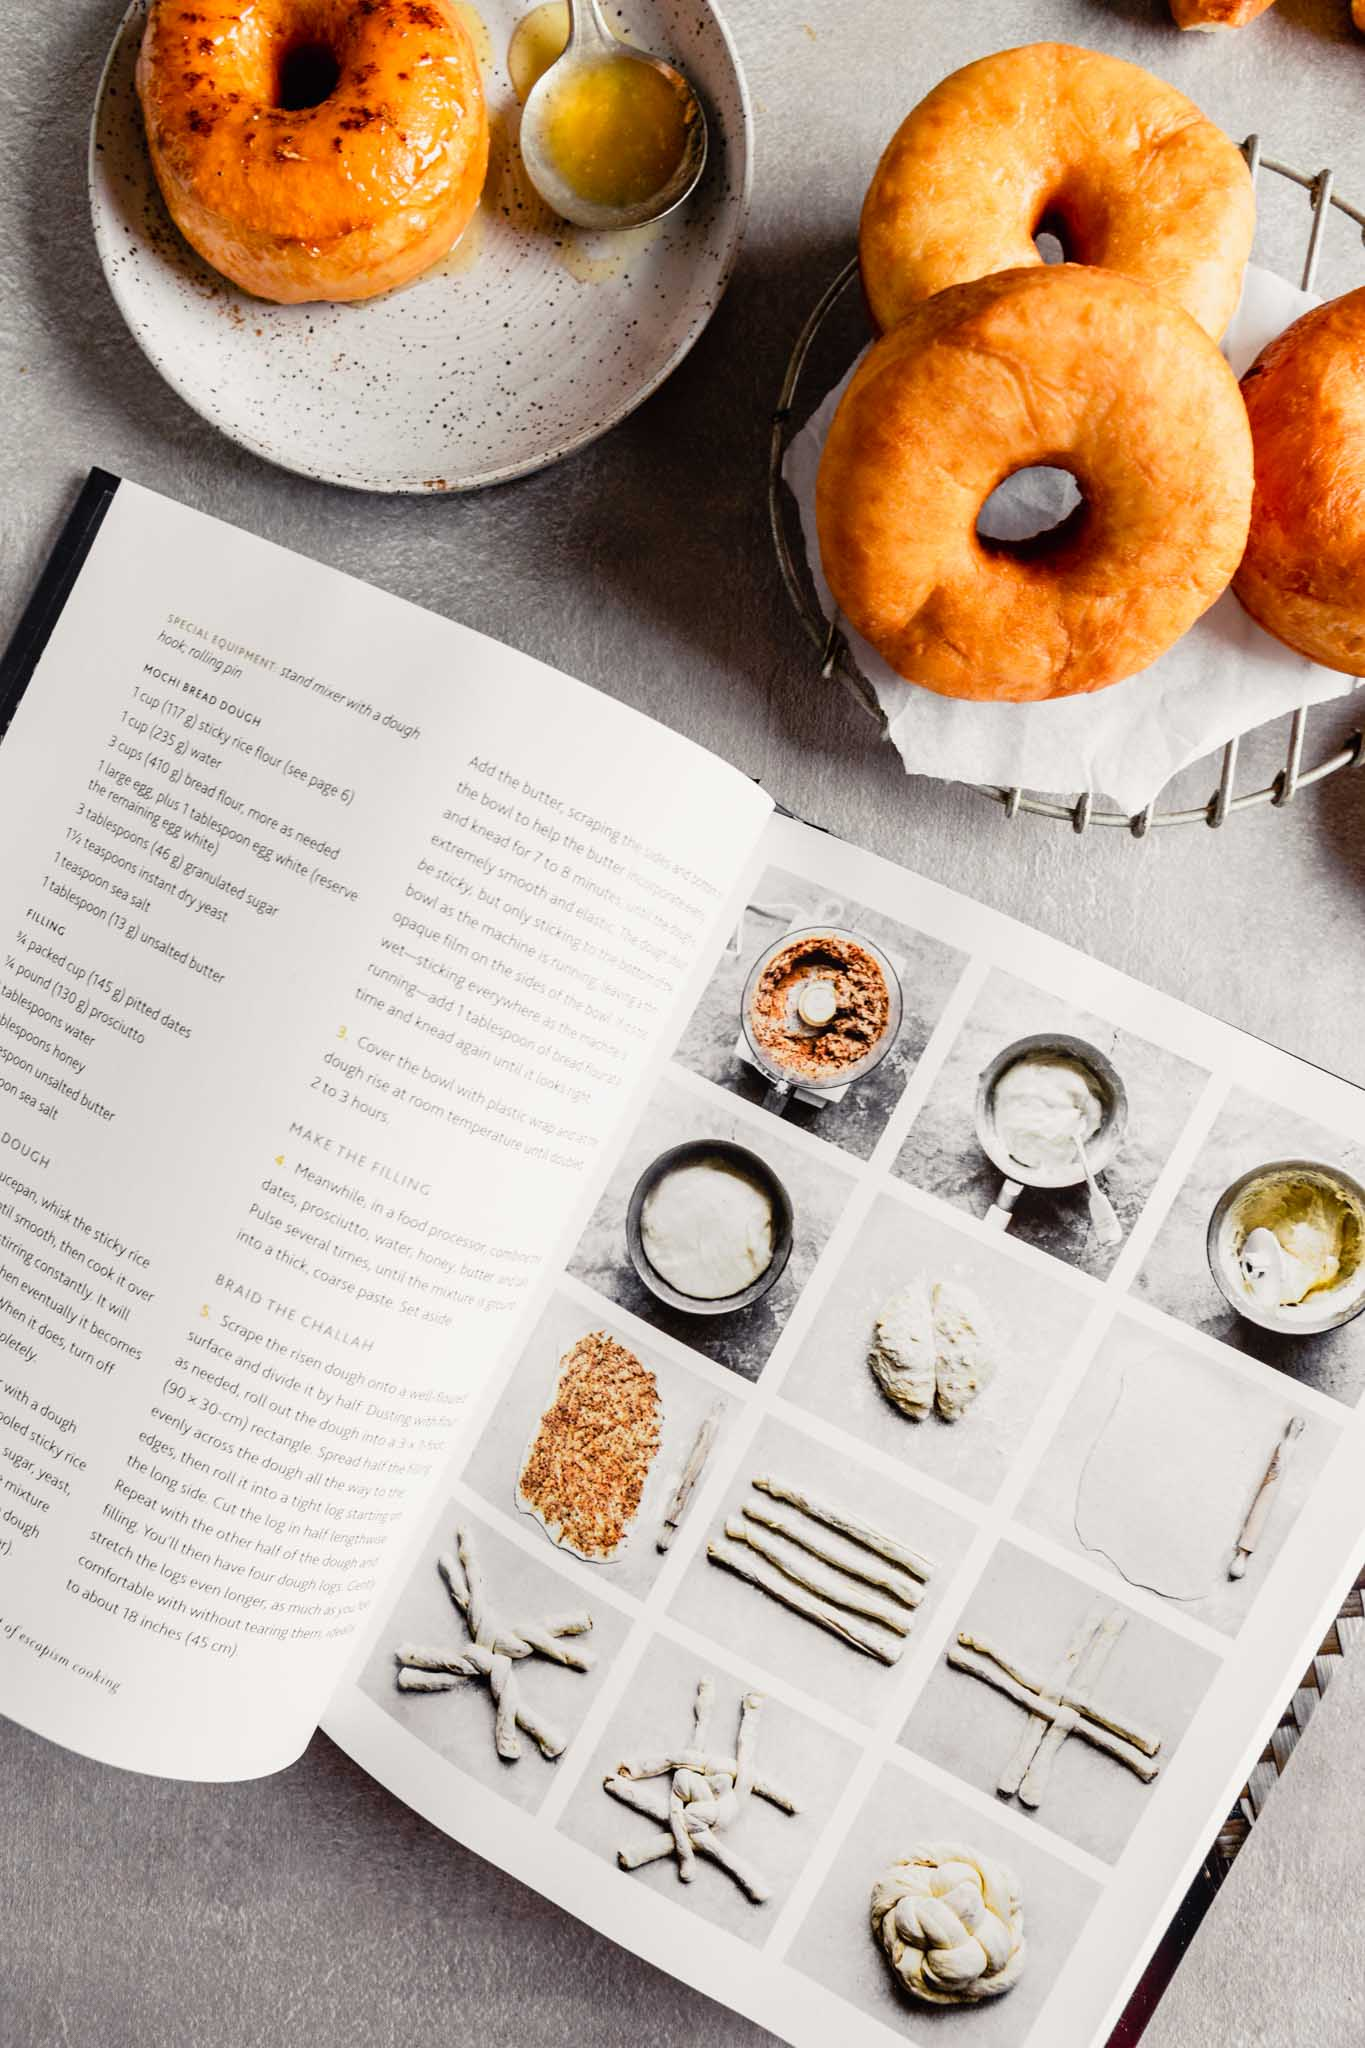 Overhead image of an open cookbook with doughnuts set around it